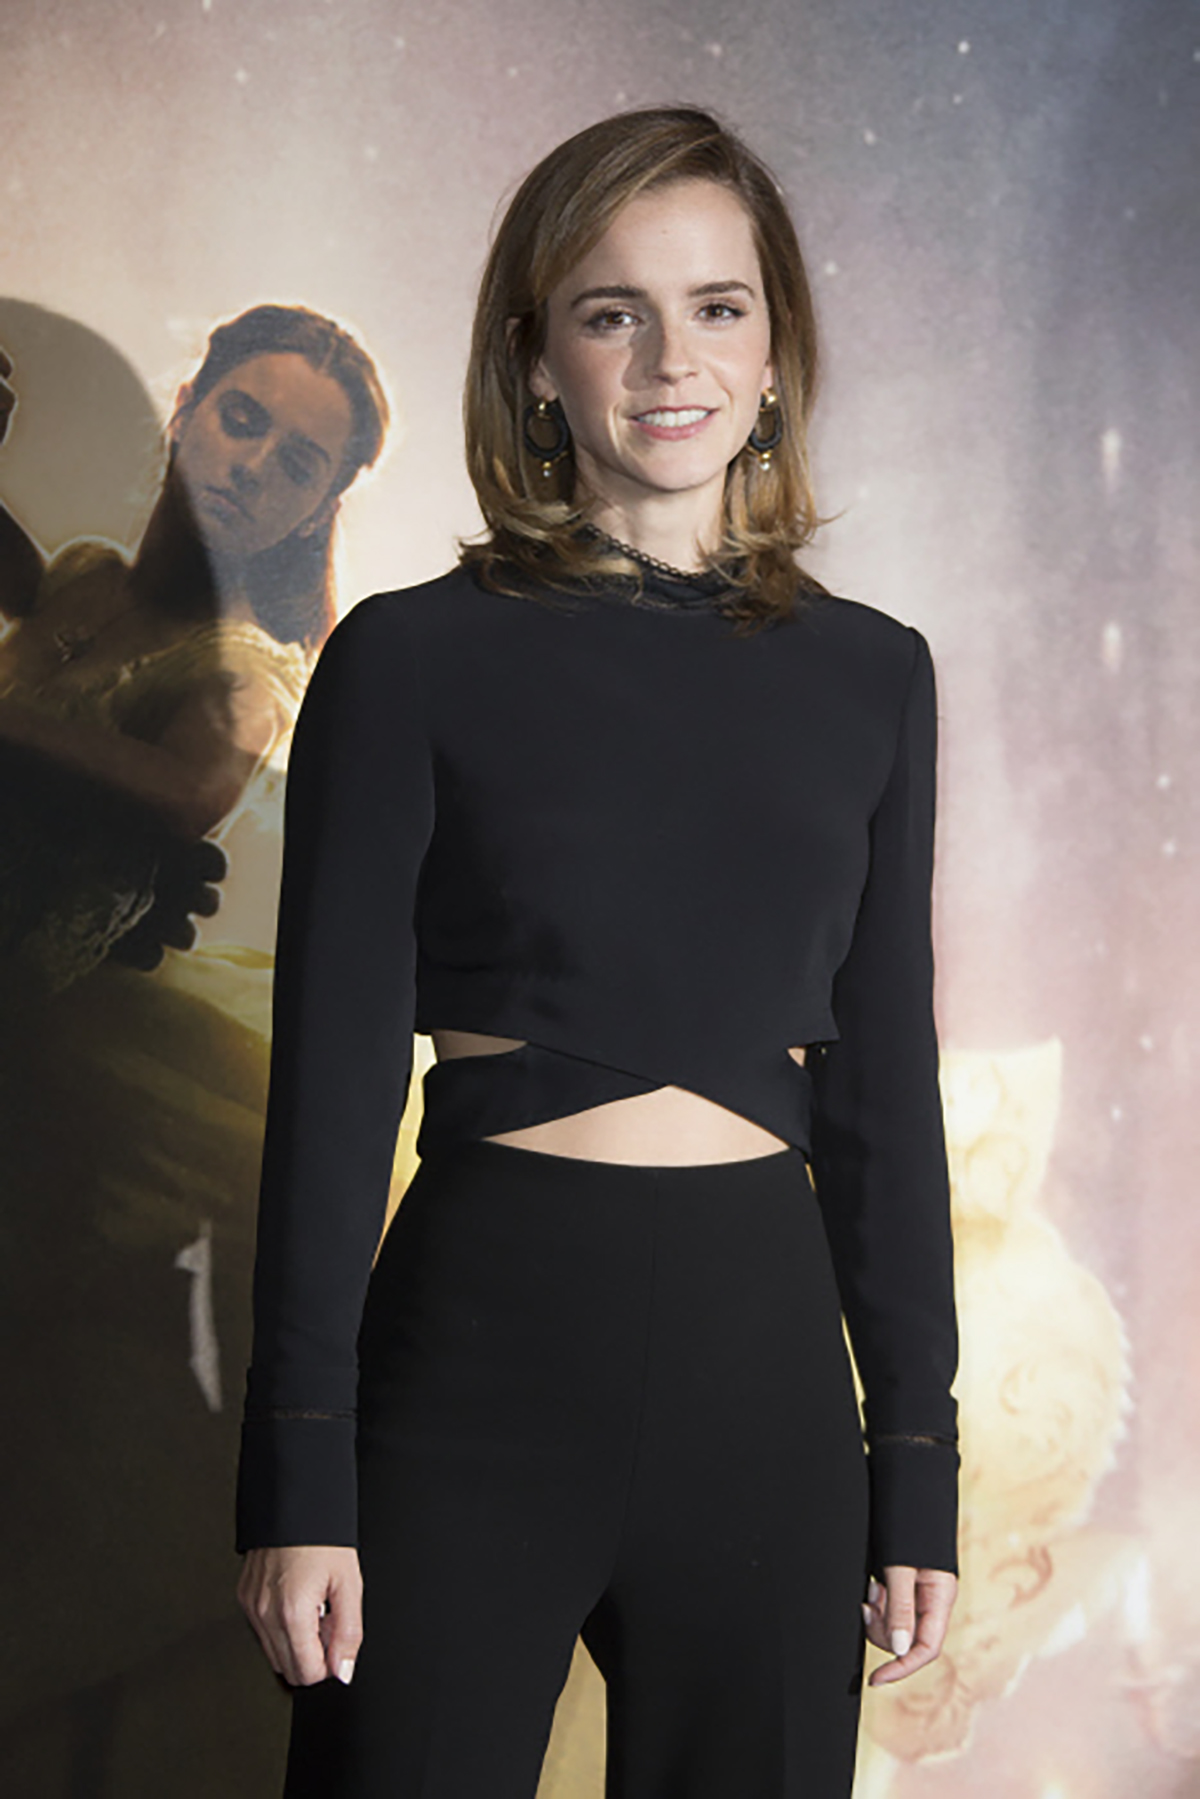 8. Actress Emma Watson during a photo call of Beauty and the Beast in London. Dos piezas